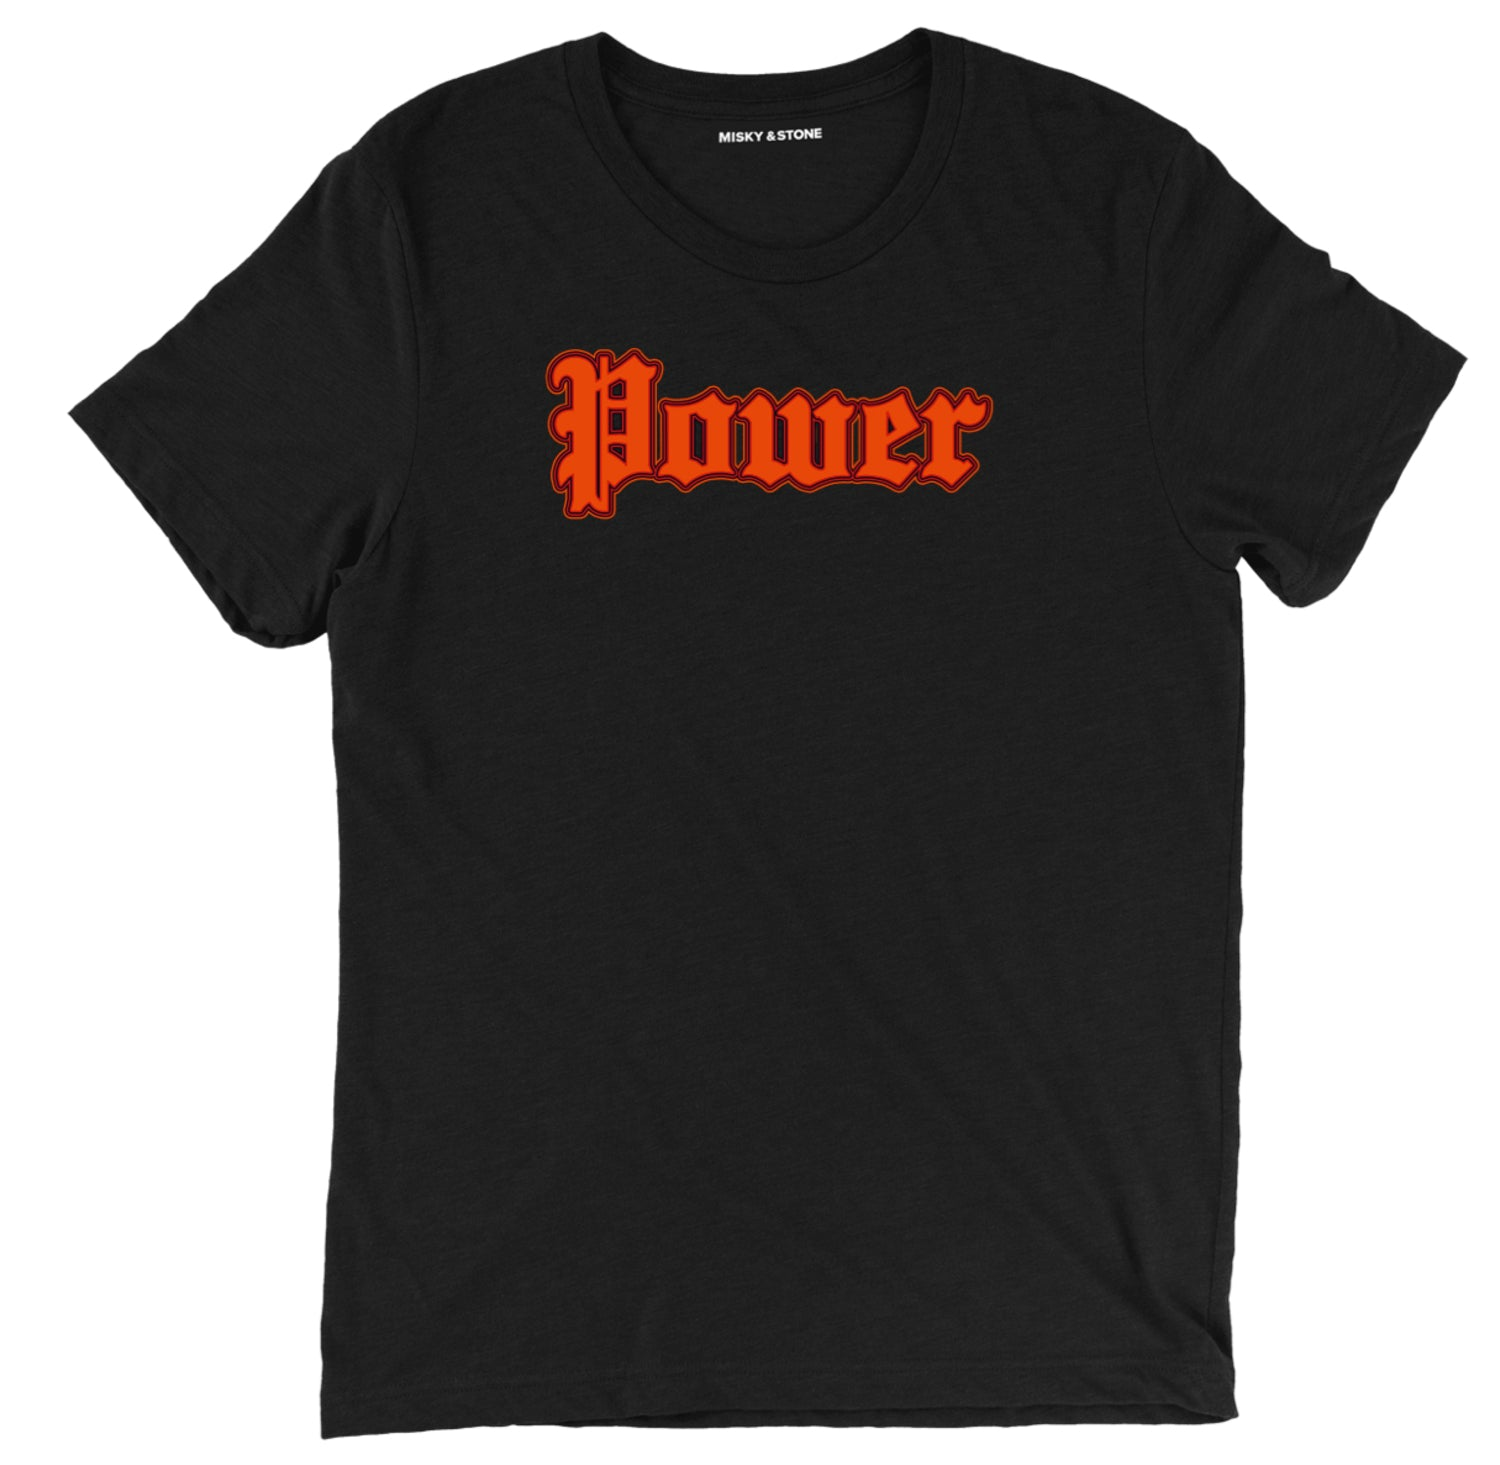 Power Vibrant Spiritual Statement Unisex T Shirt